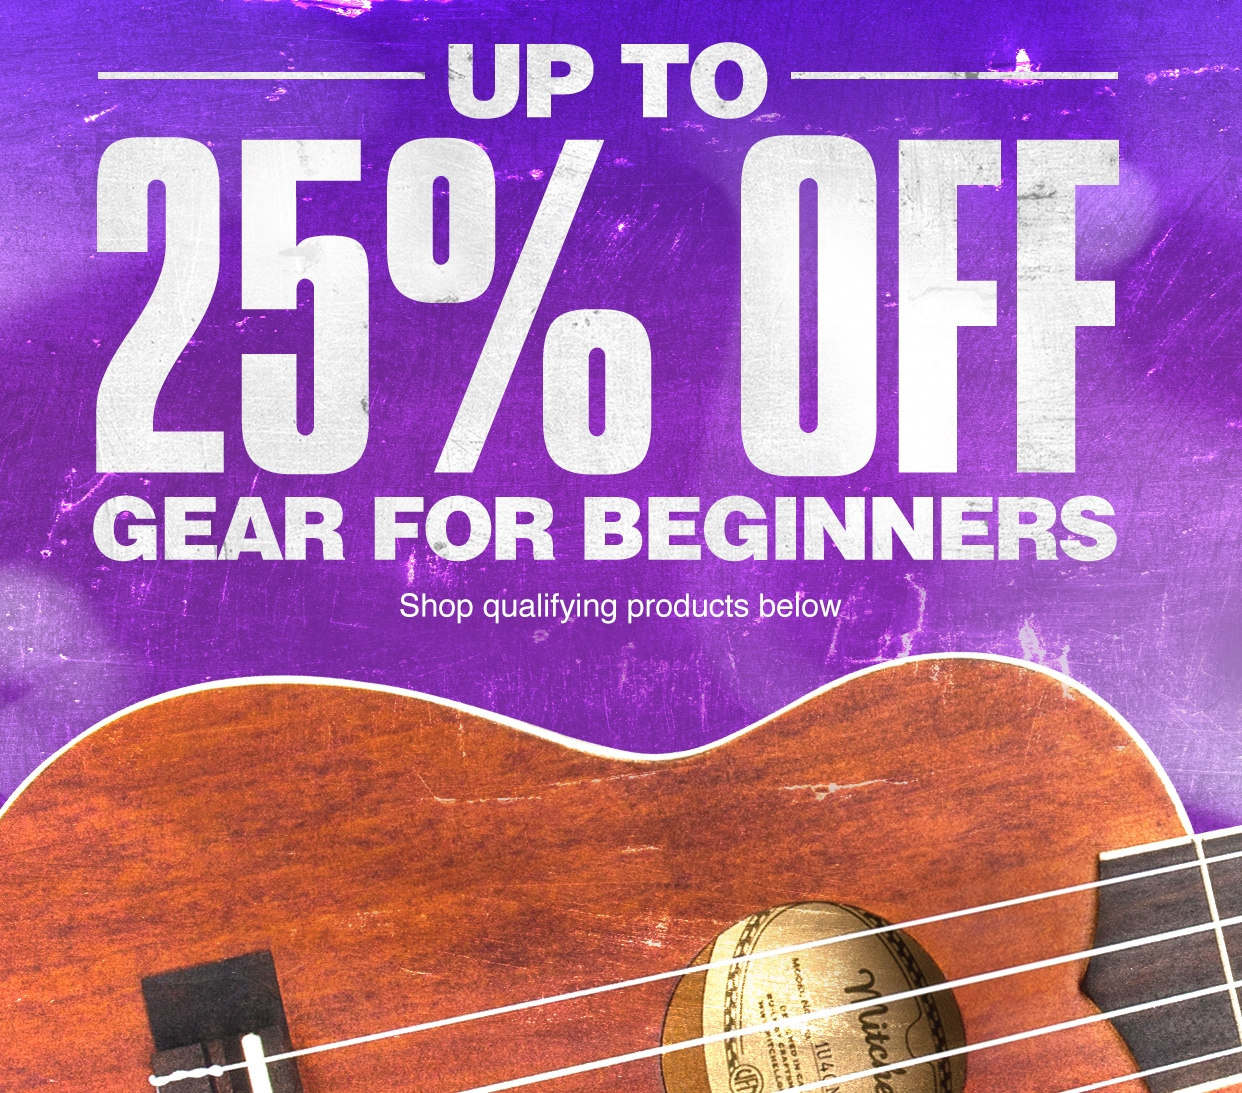 Up to 25 percent off gears for beginners. Shop qualifying products below.